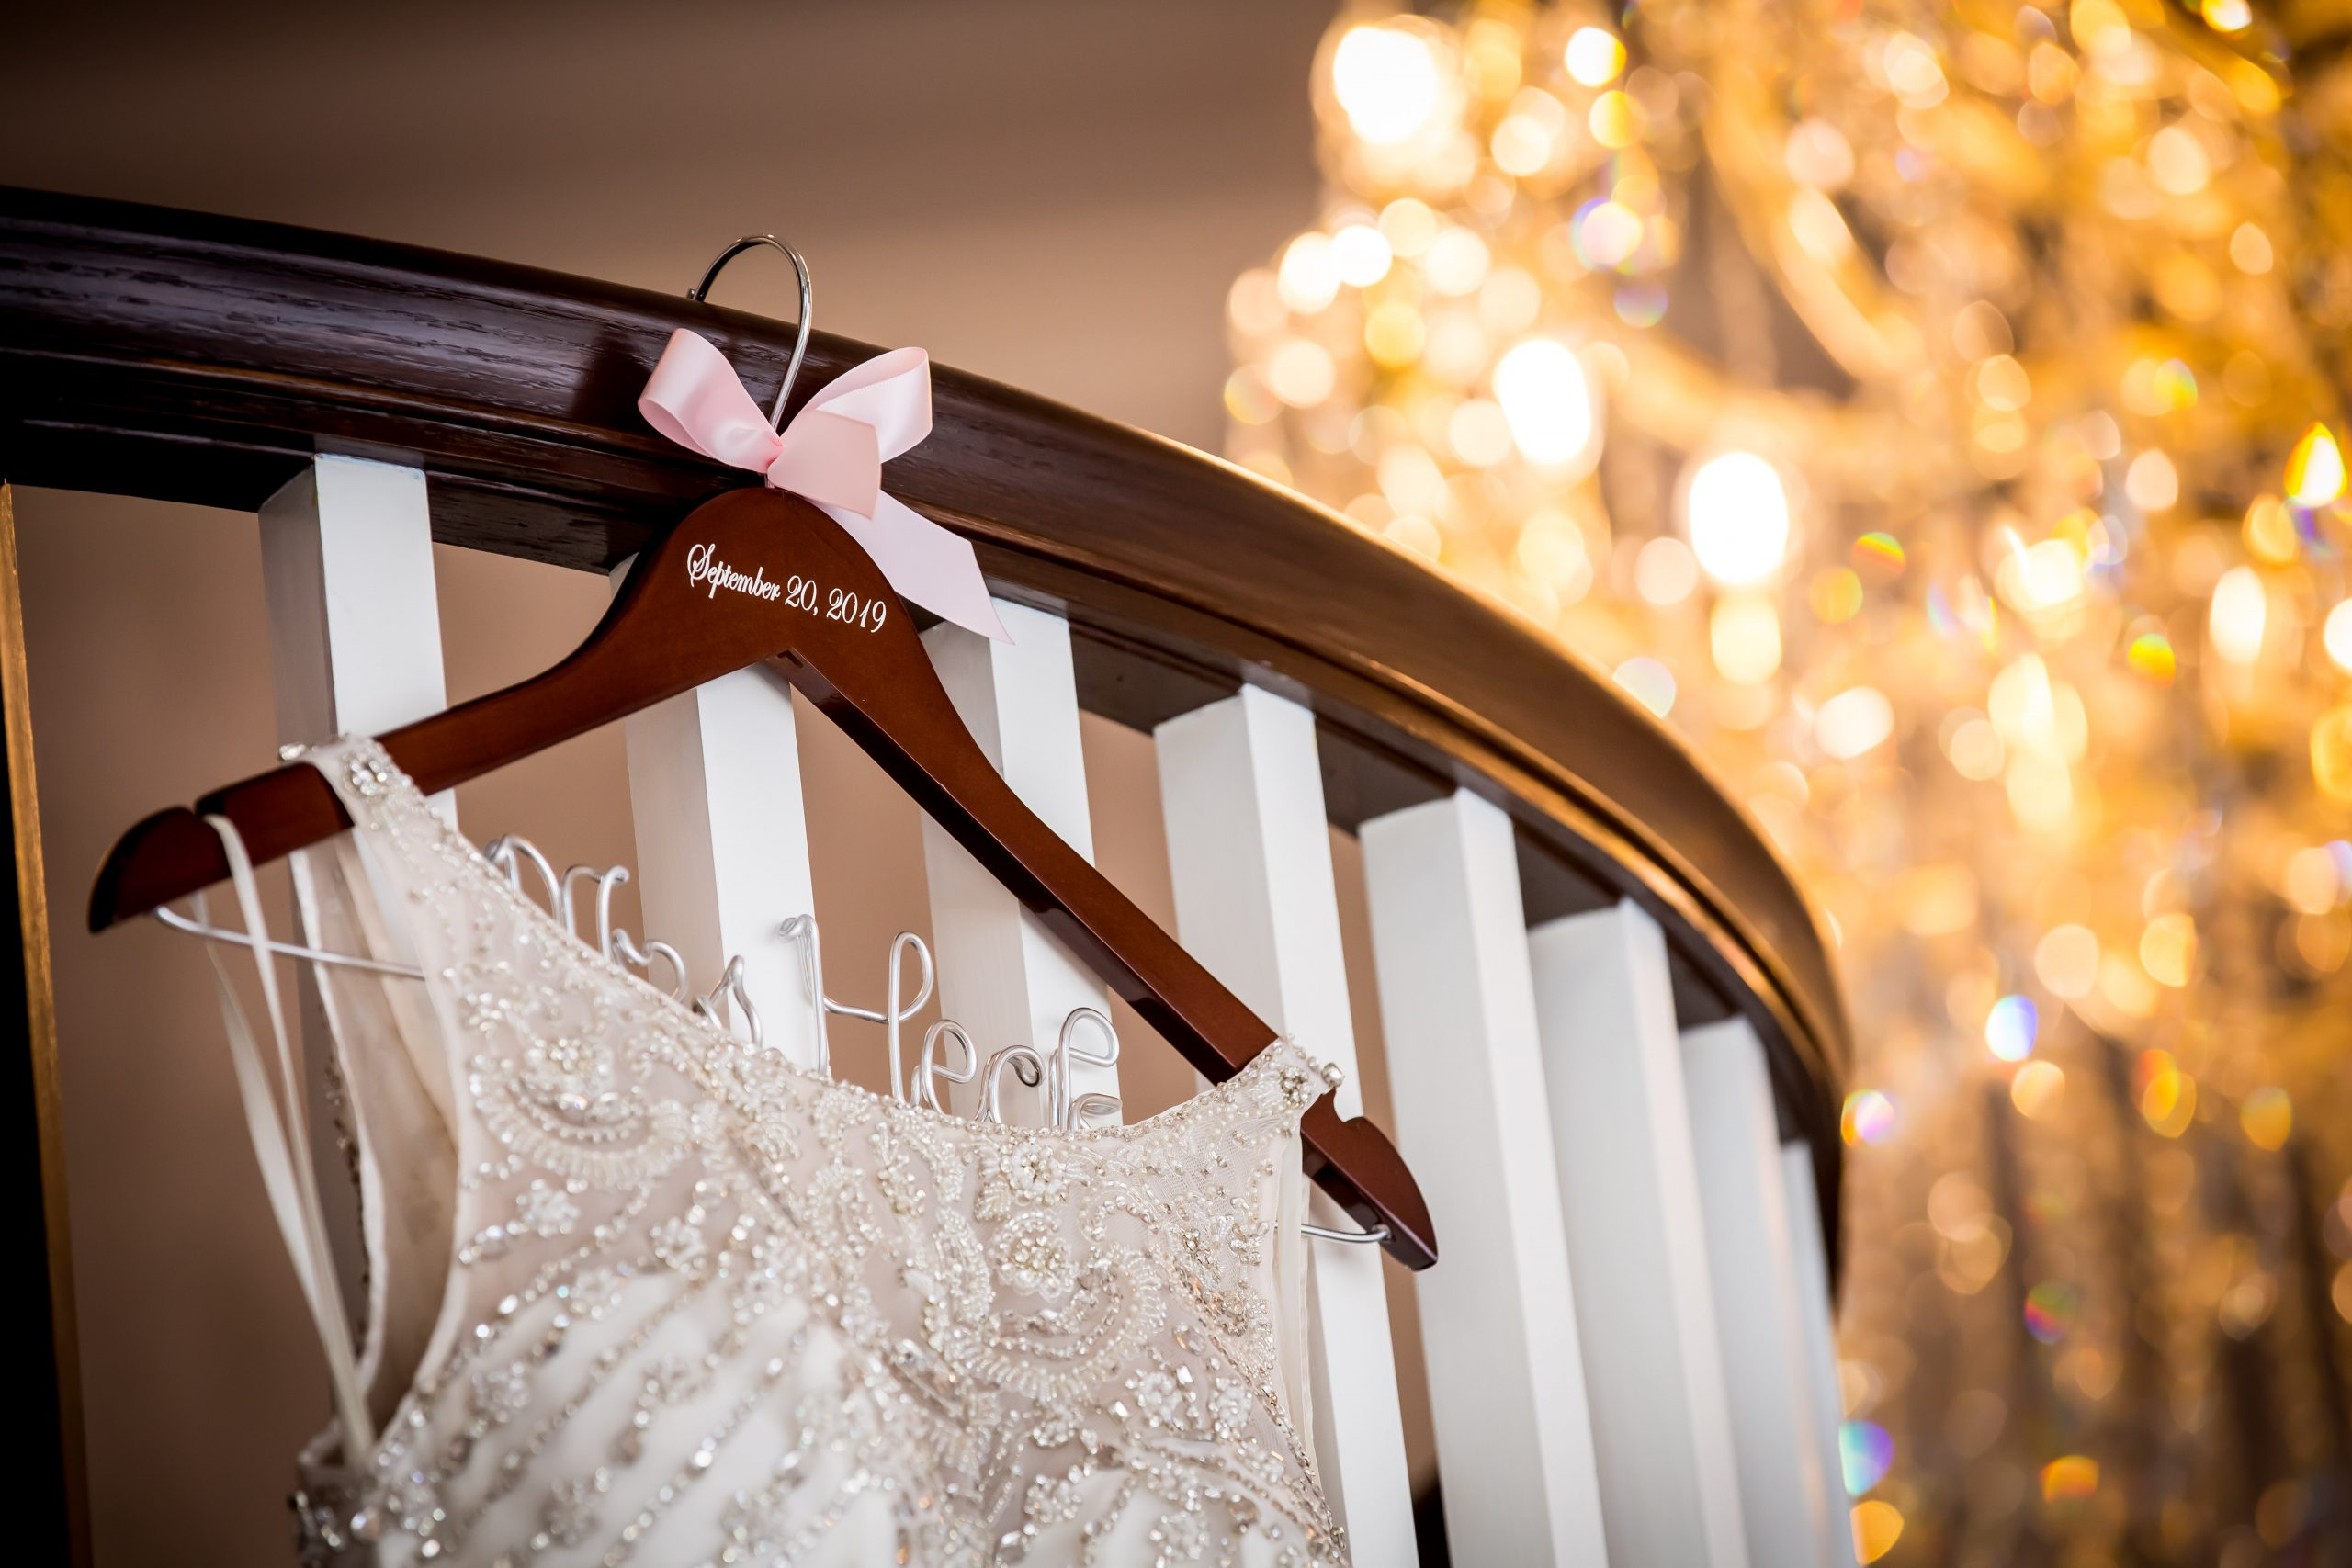 Glen-Sanders-Mansion-Wedding-michael-conway-photograhy-albany-wedding-photographer82.jpg